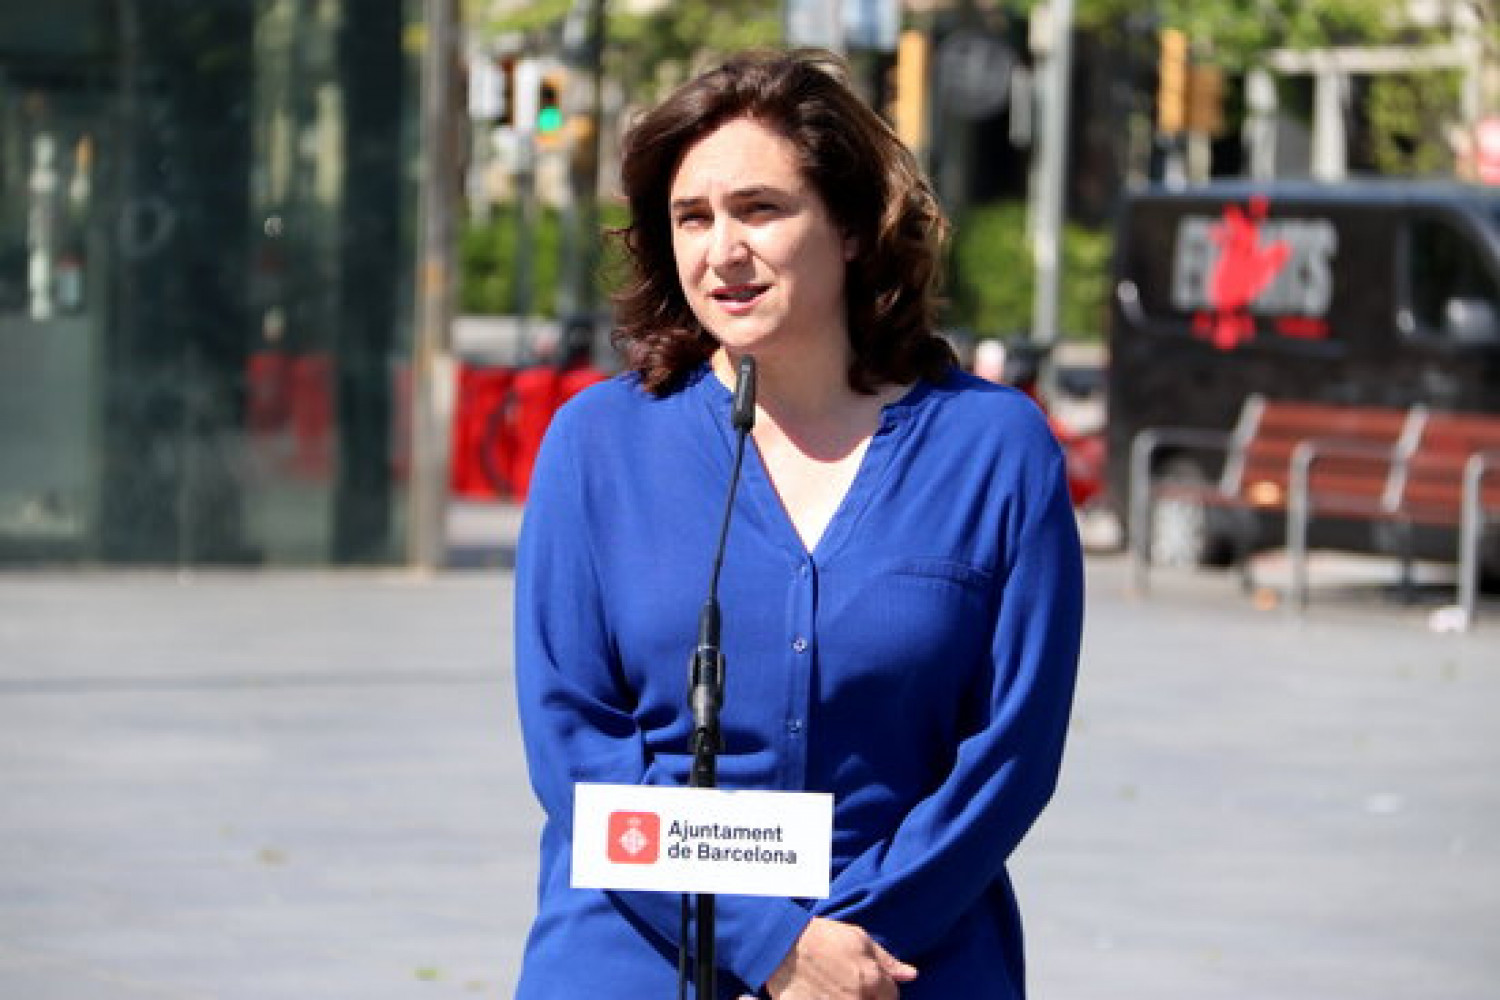 Barcelona mayor Ada Colau, April 25, 2020 (by Mar Vila)